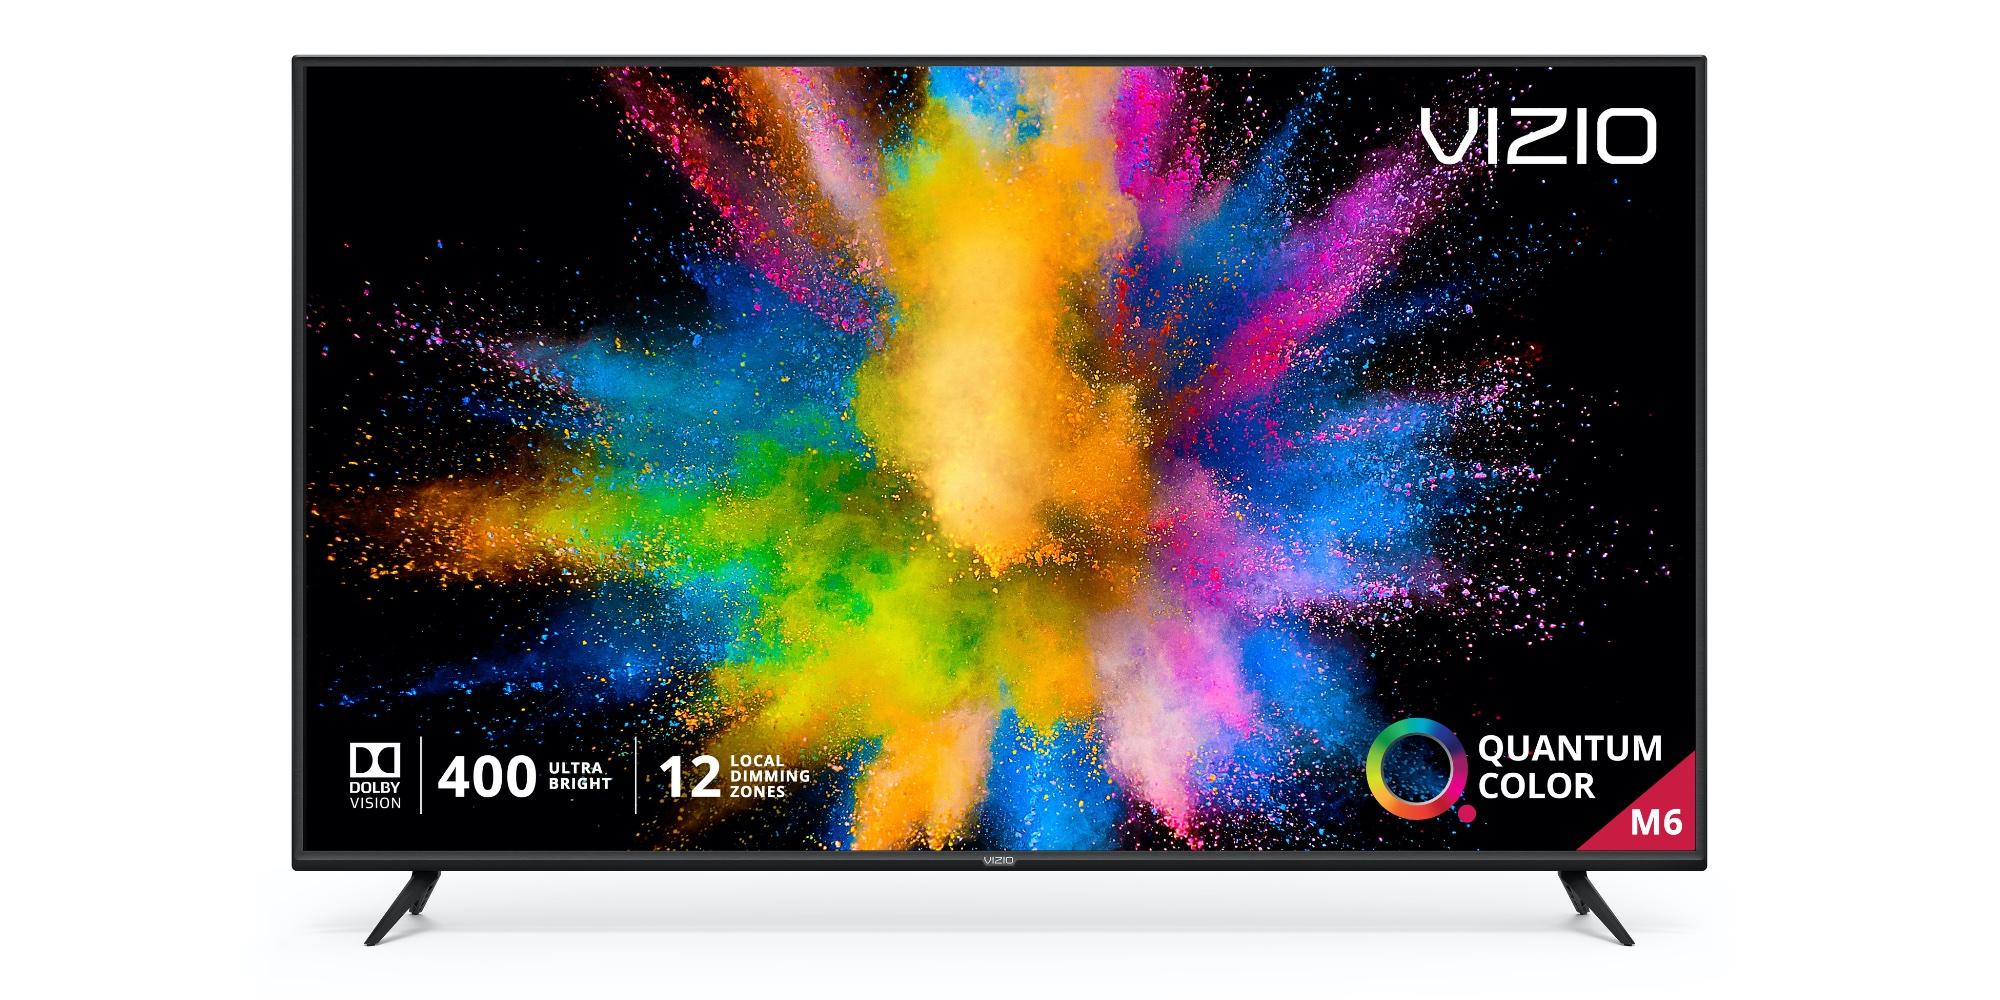 VIZIO's 75-inch 4K HDR TV touts AirPlay 2 and HomeKit at $498 (Reg. $748) - 9to5Toys